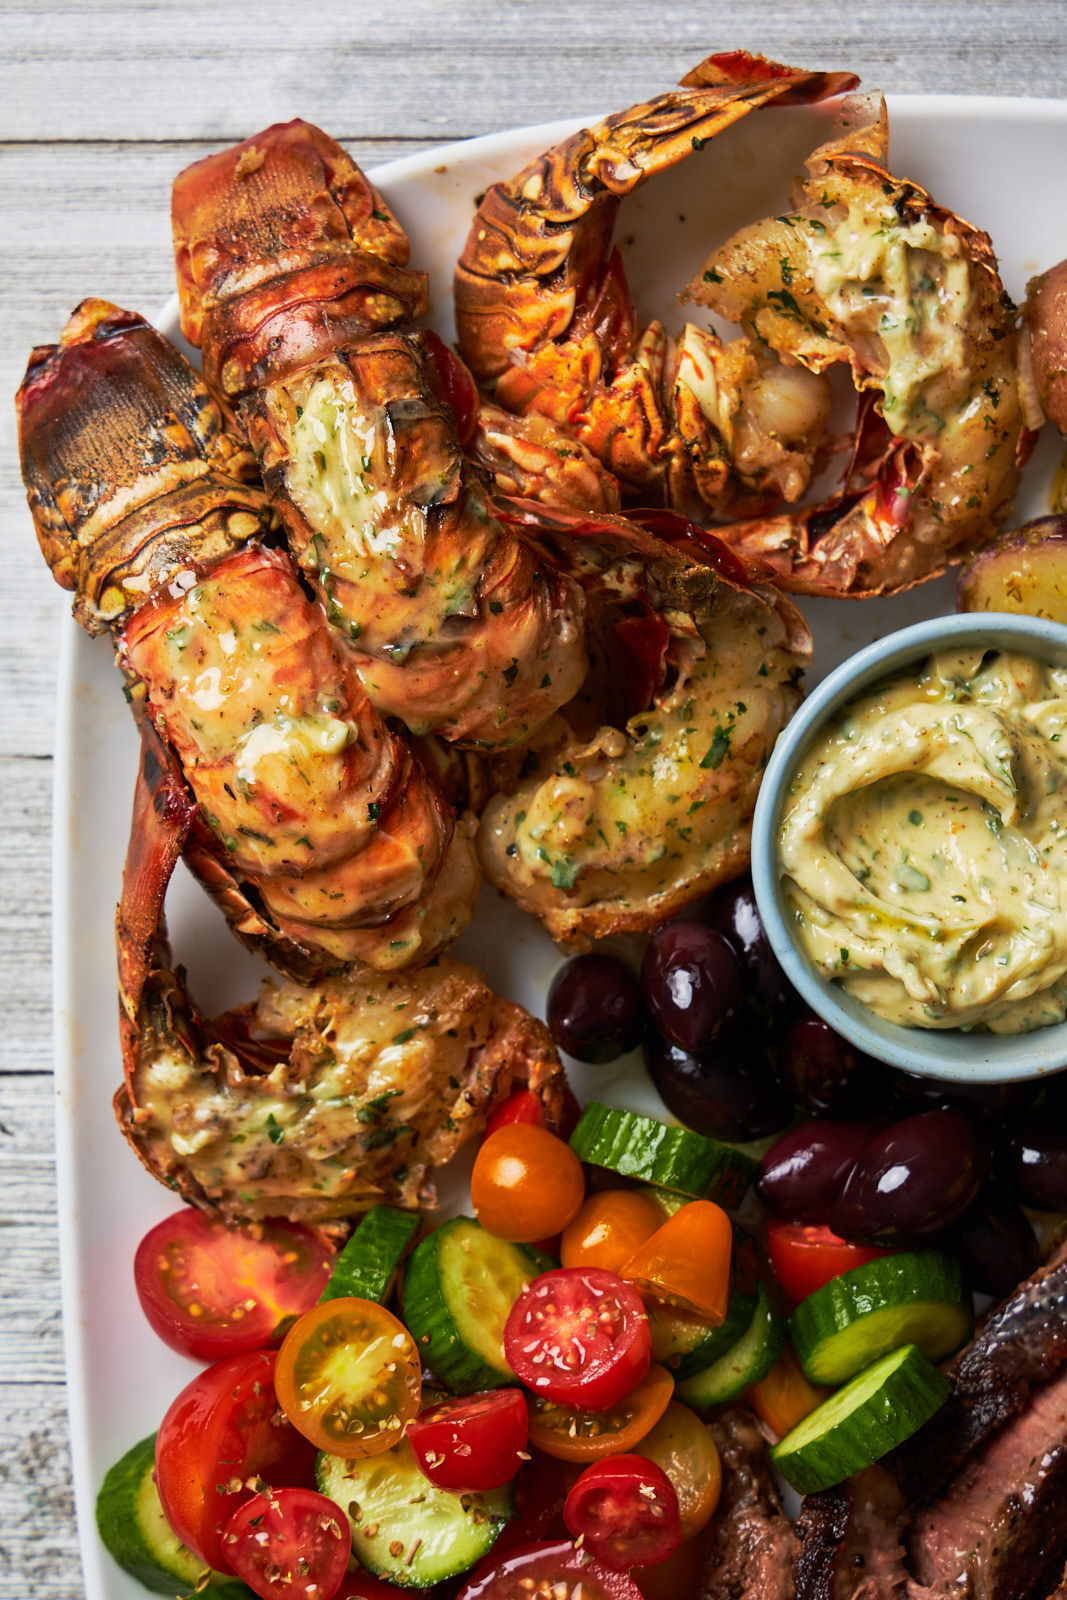 Grilled Lobster Tail and Steak Platter